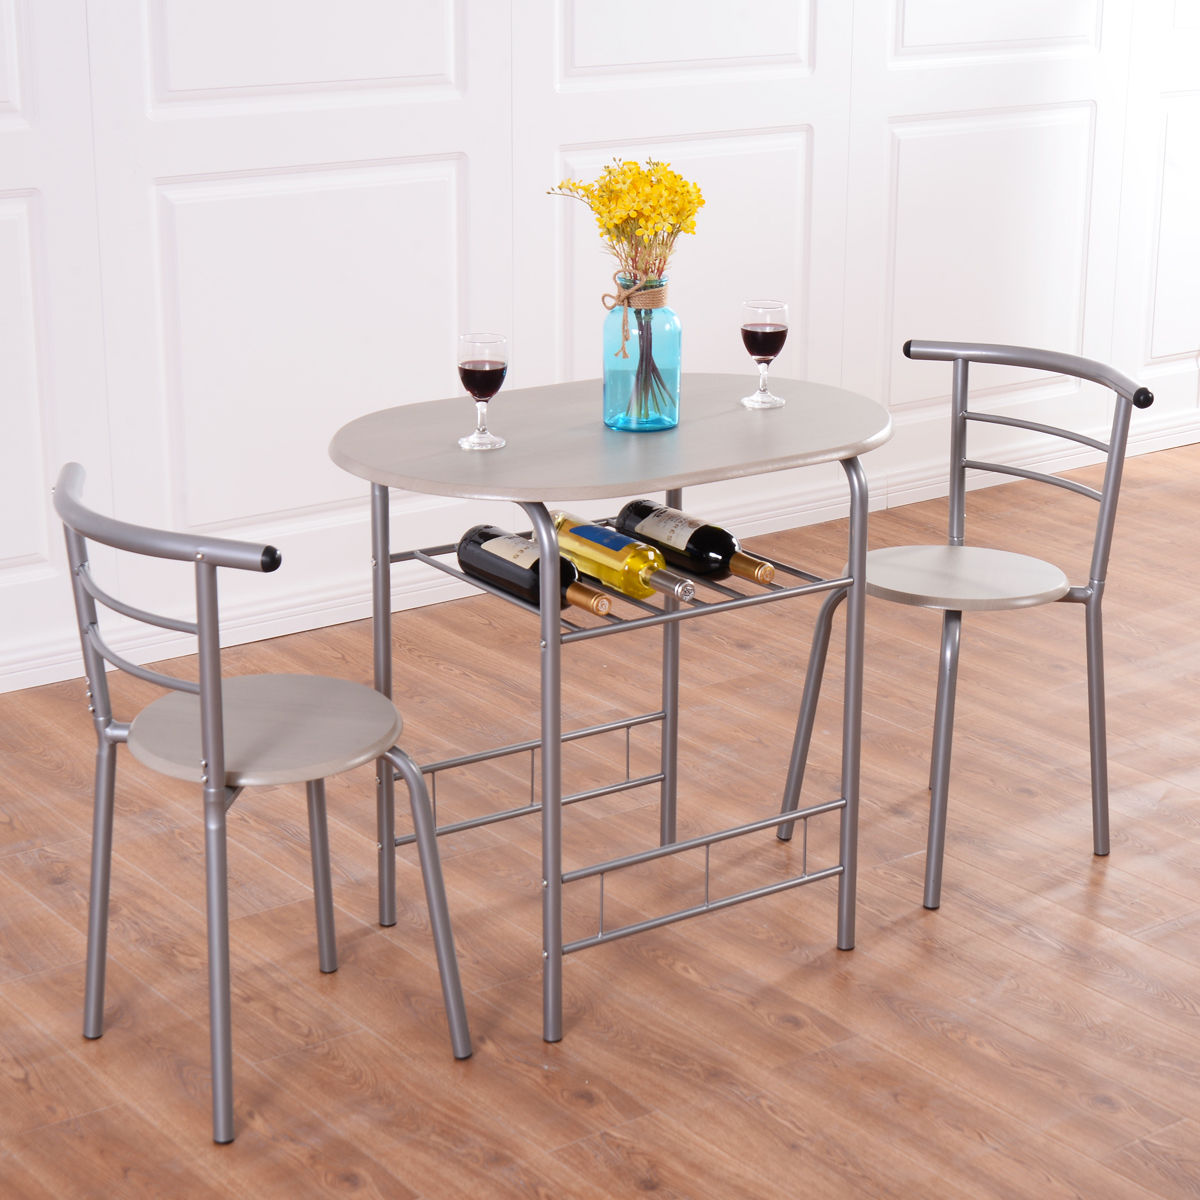 Costway 3 Piece Dining Set Table 2 Chairs Bistro Pub Home Kitchen Breakfast Walmart Canada